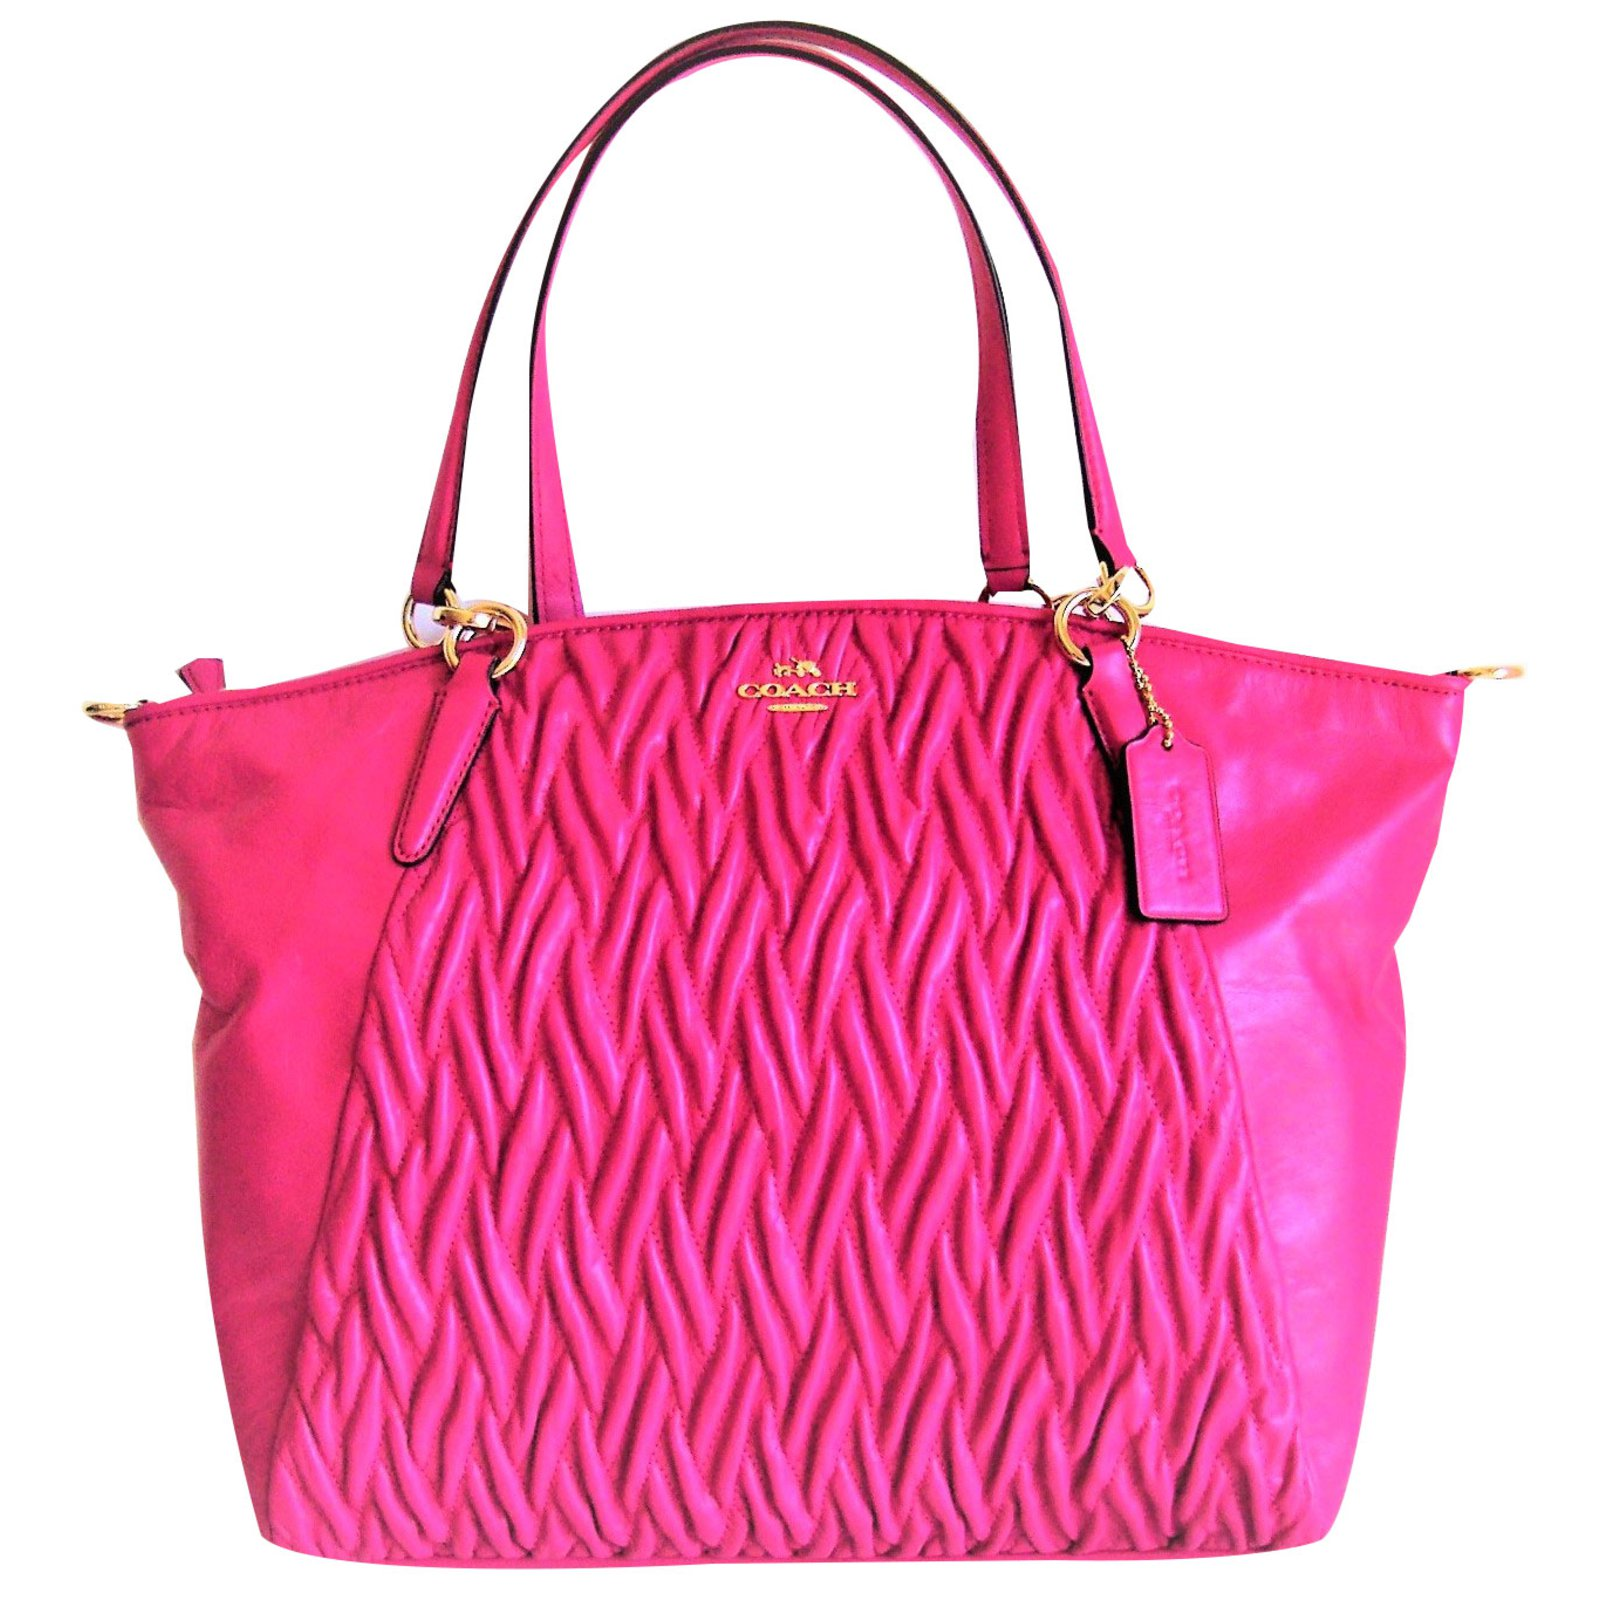 7bc417c341fa Coach Coach - twisted kelsey bag Handbags Leather Pink ref.52158 ...